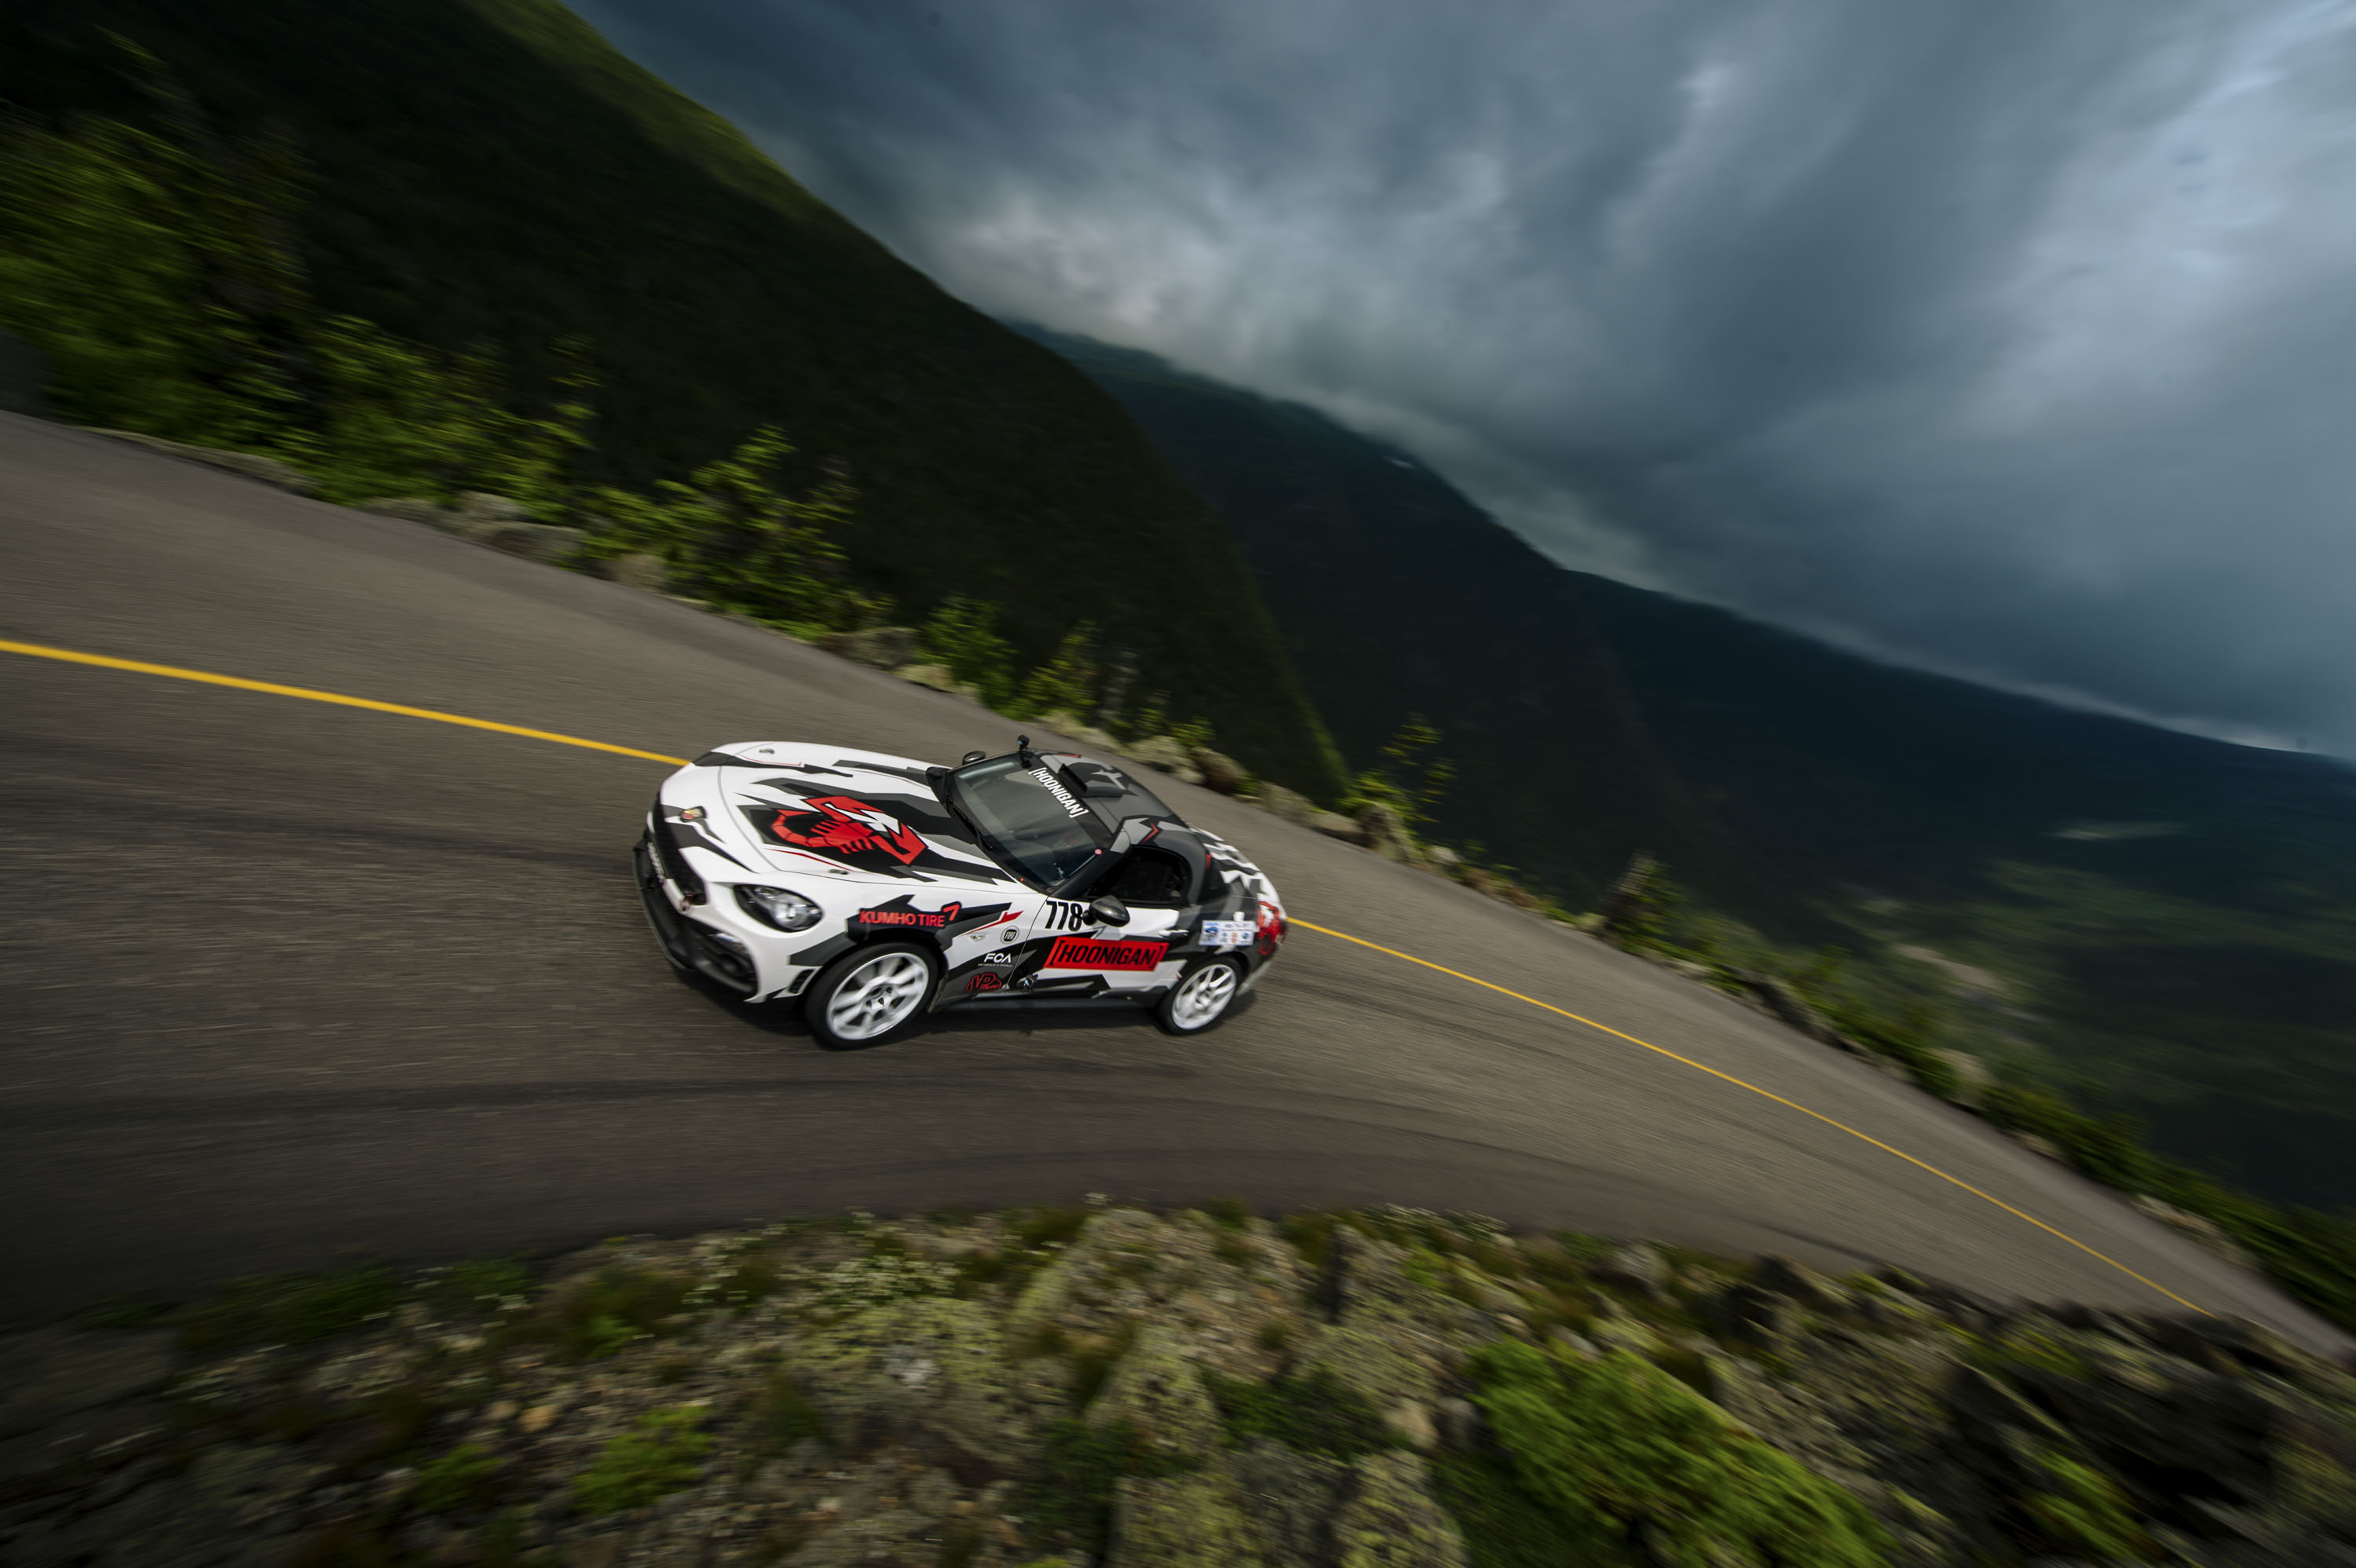 Hoonigan Names New Female Racer For Fiat 124 Spider Abarth